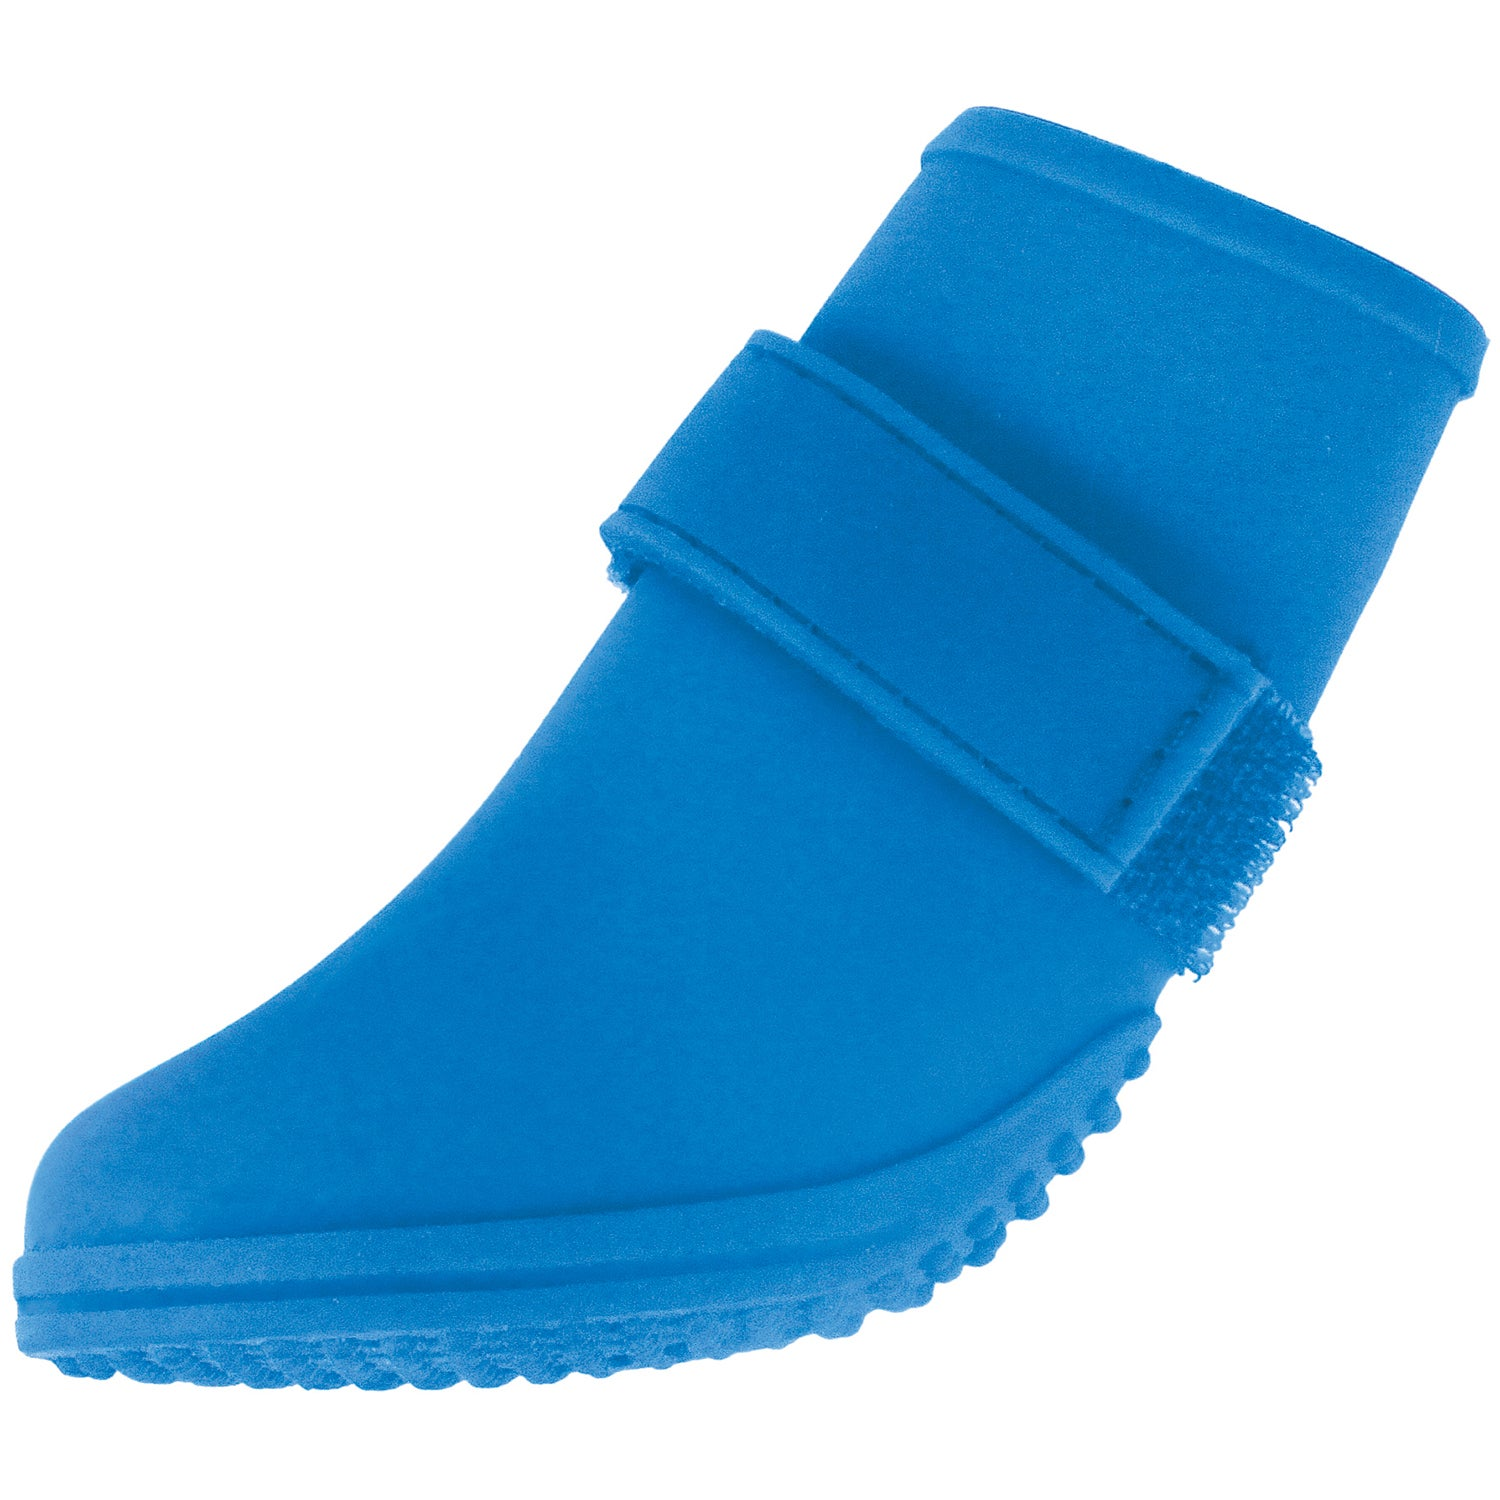 Target Jelly Wellies Boots Extra Large 3.5inBlue (Blue)